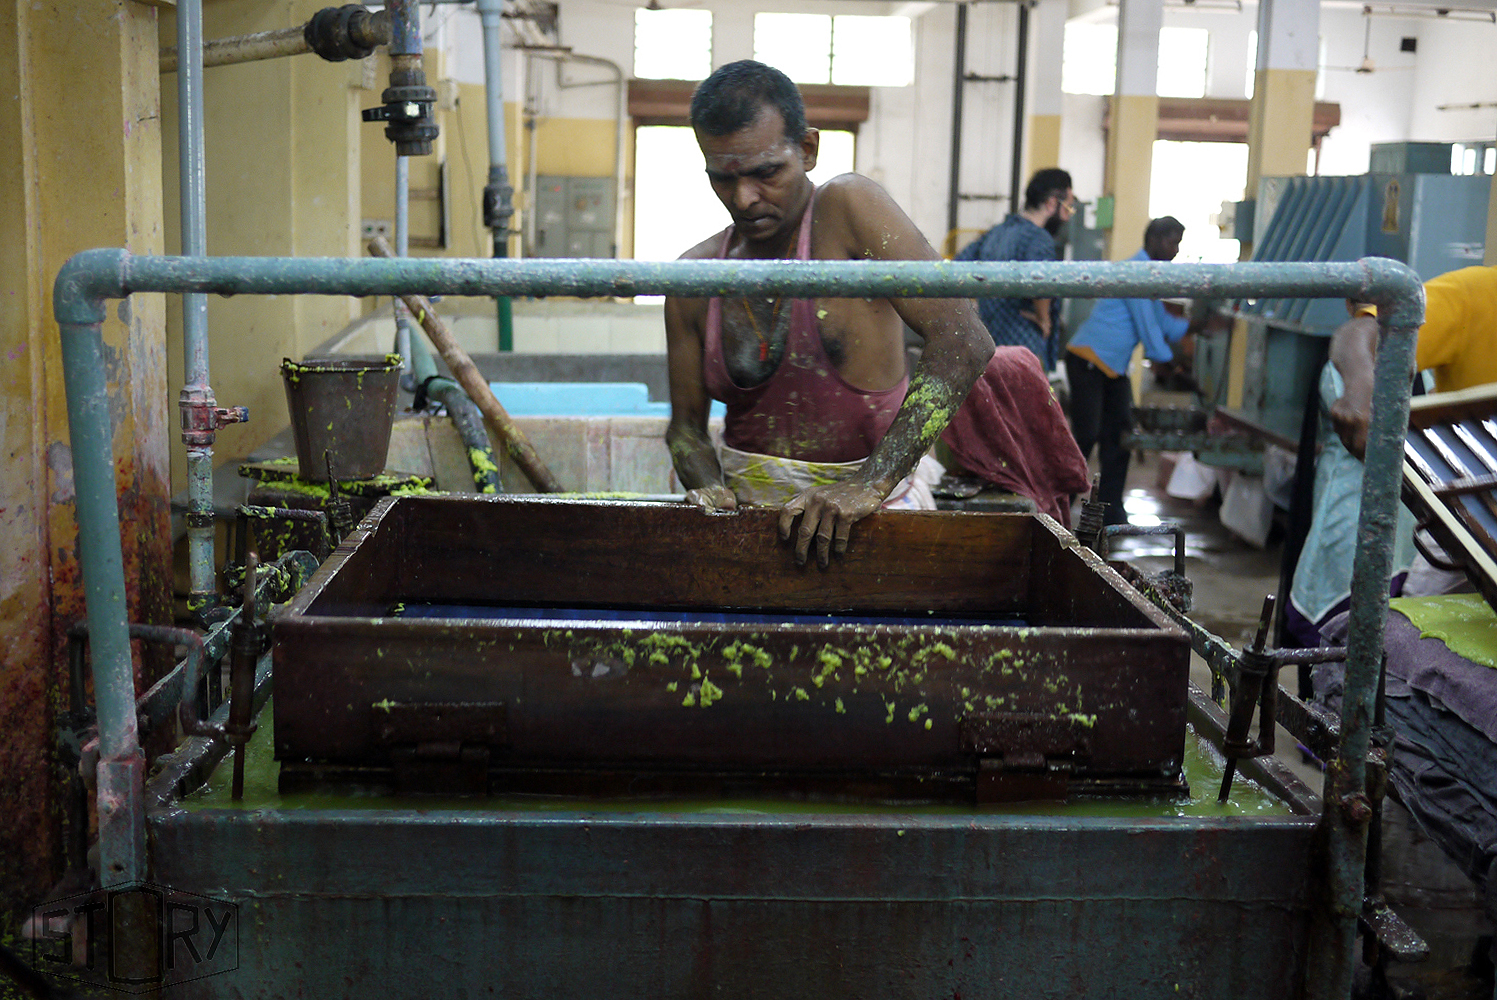 07_SRI AUROBINDO COTTON PAPER FACTORY